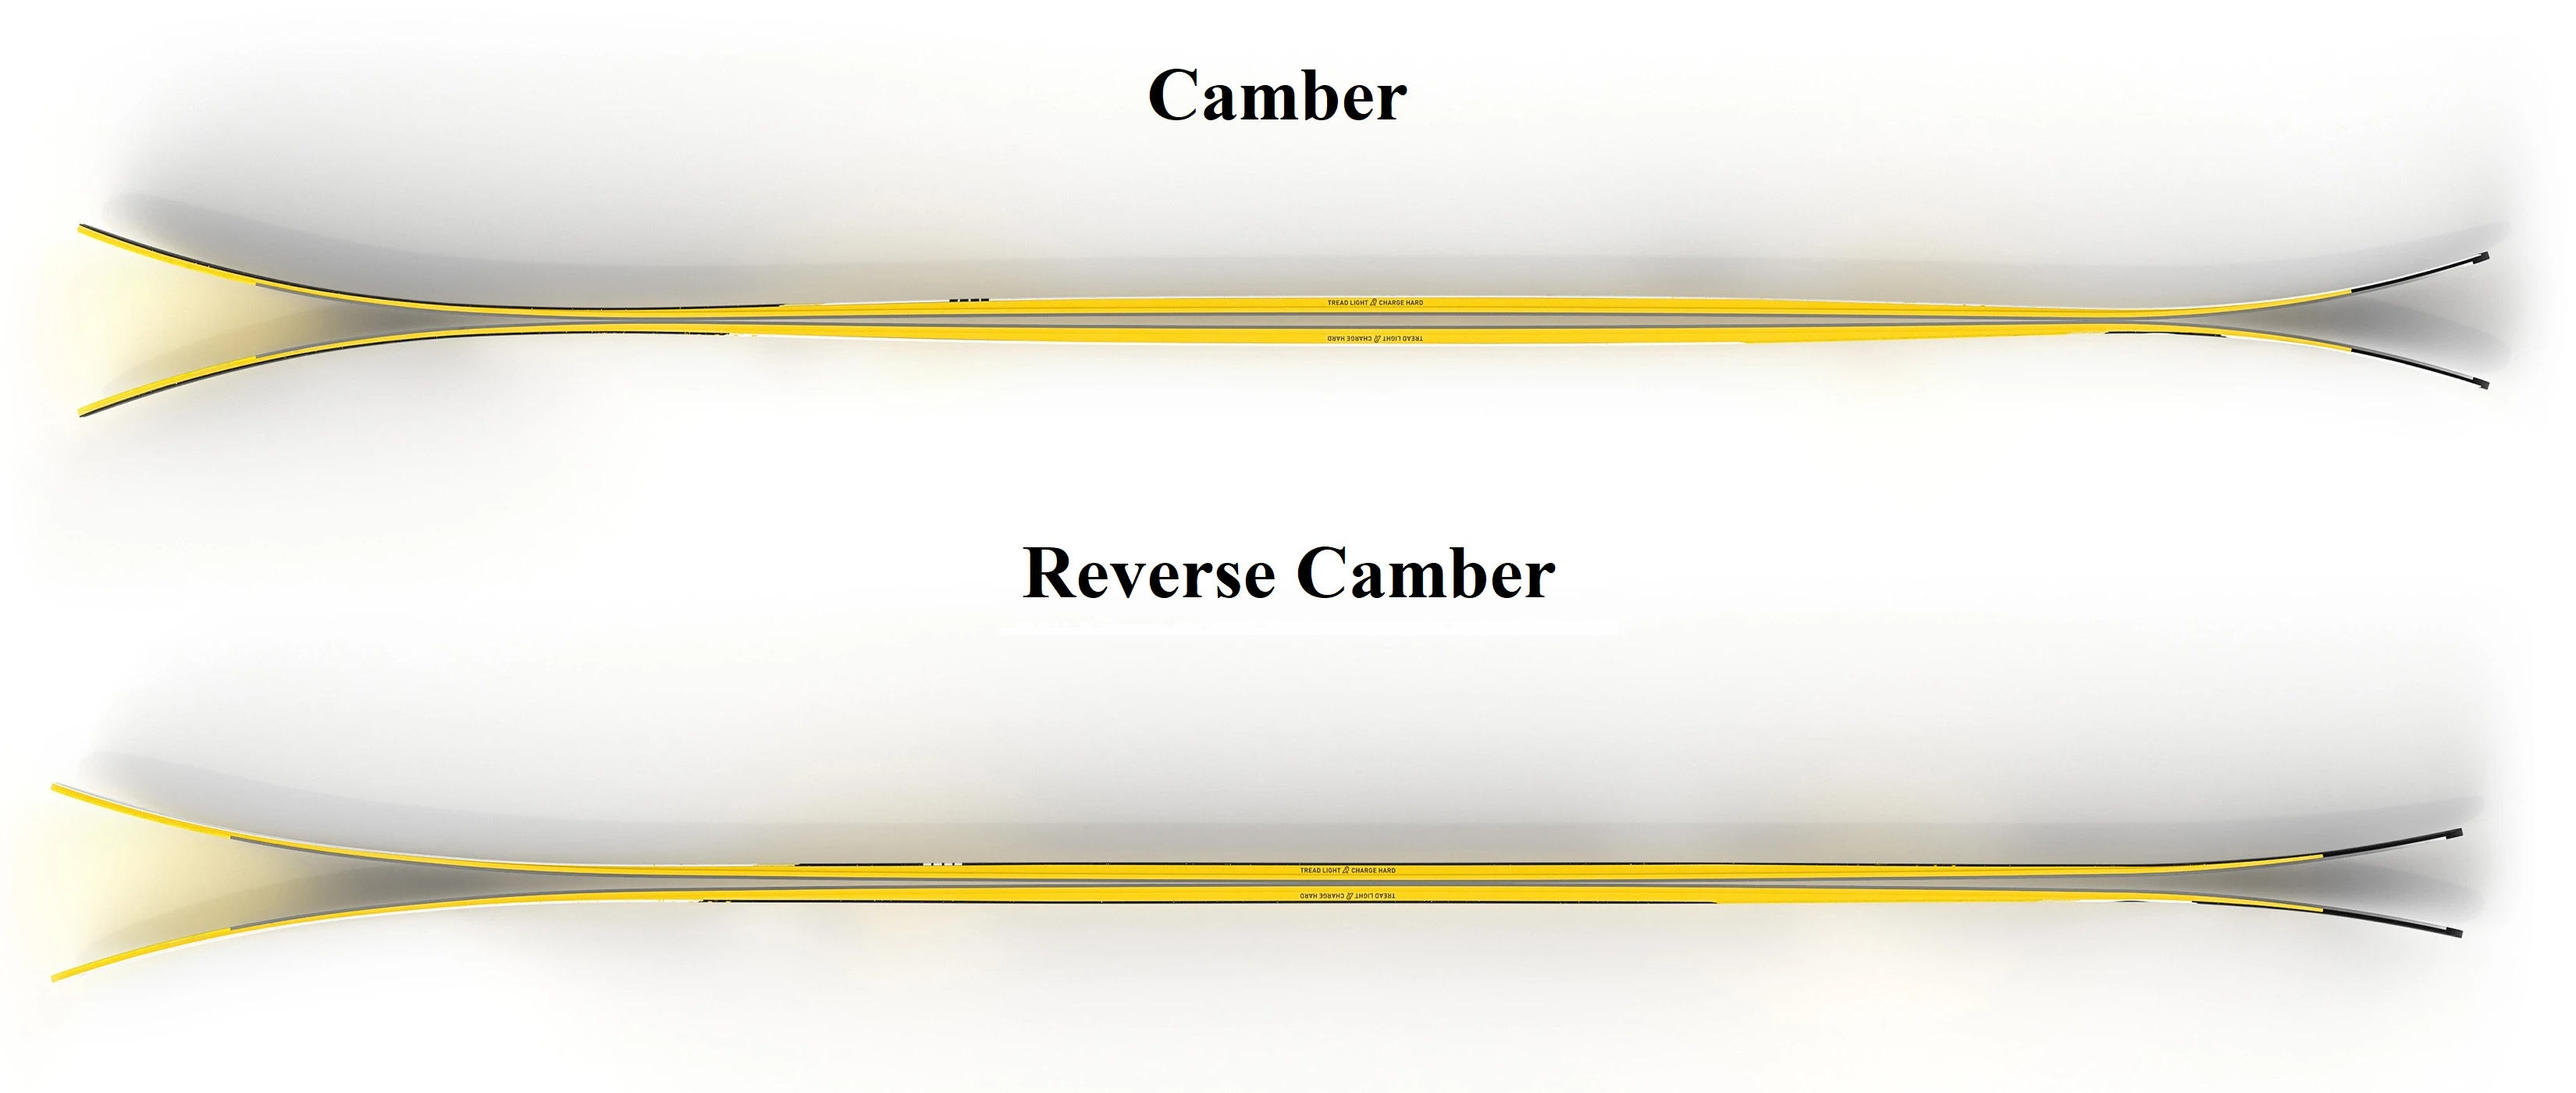 Camber/Reverse Camber